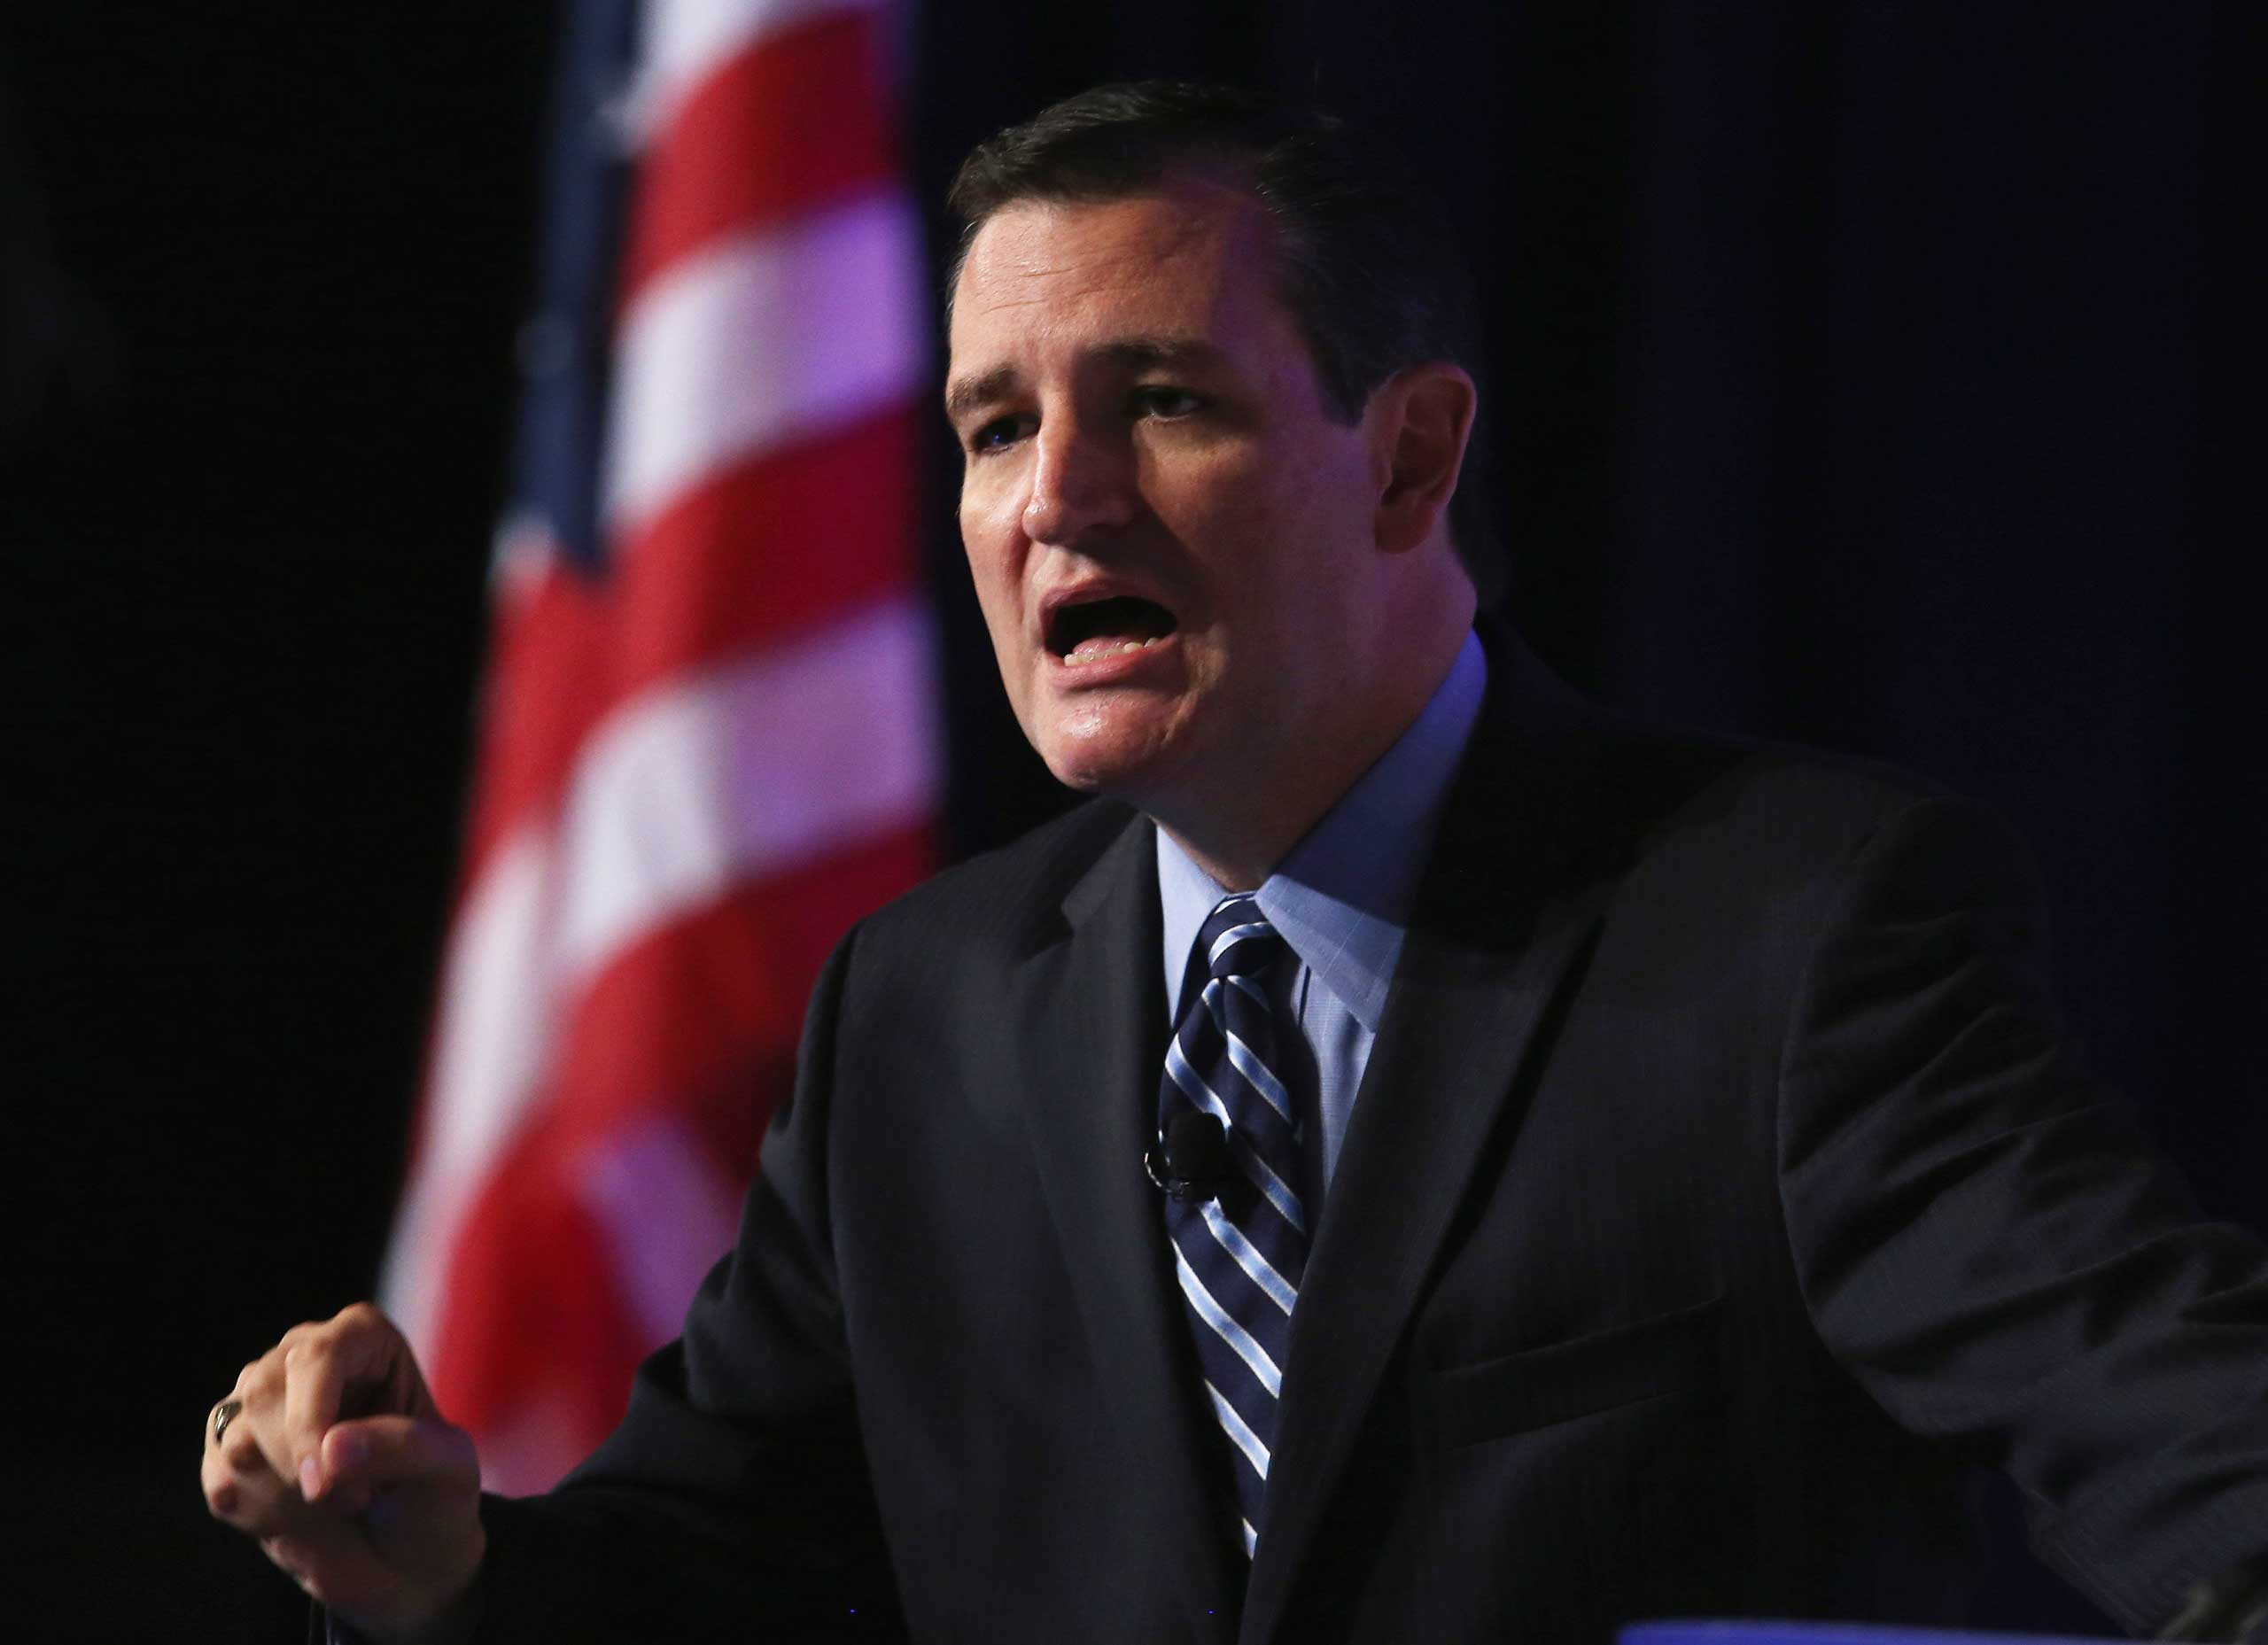 Sen. Ted Cruz (R-TX) speaks at the 2014 Values Voter Summit, Sept. 26, 2014 in Washington, DC.